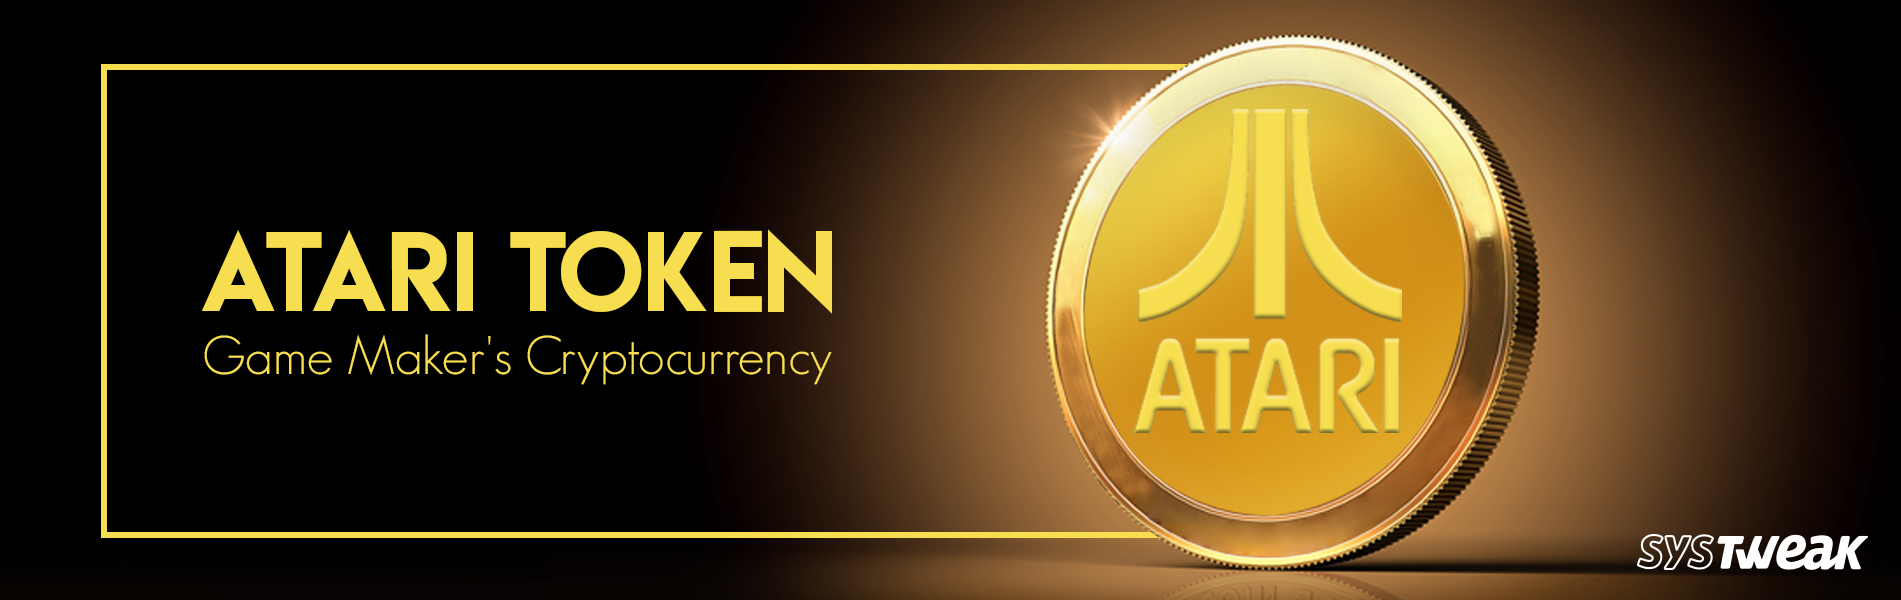 Atari Announces Crypto Token!